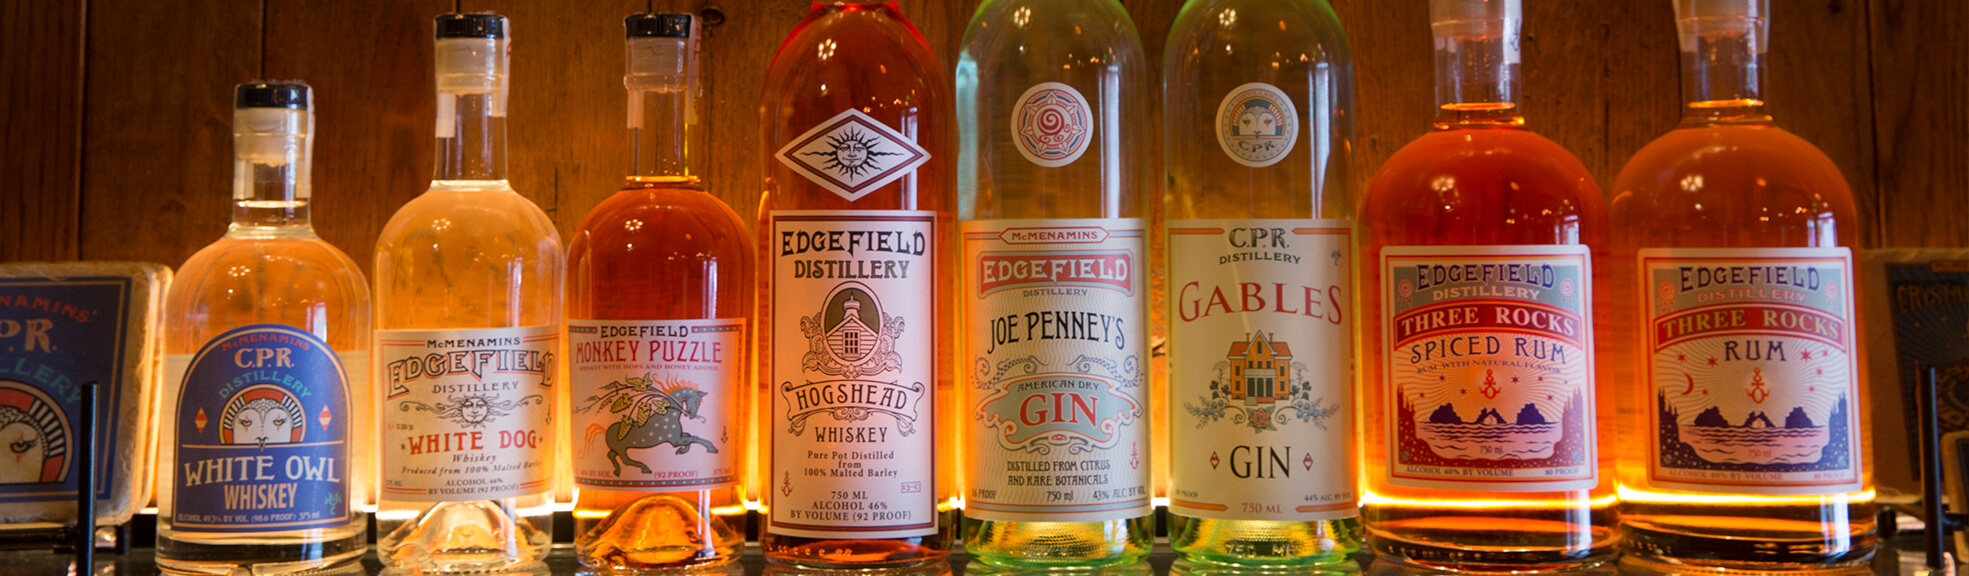 <h3 >McMenamins Distilleries & Spirits</h3>